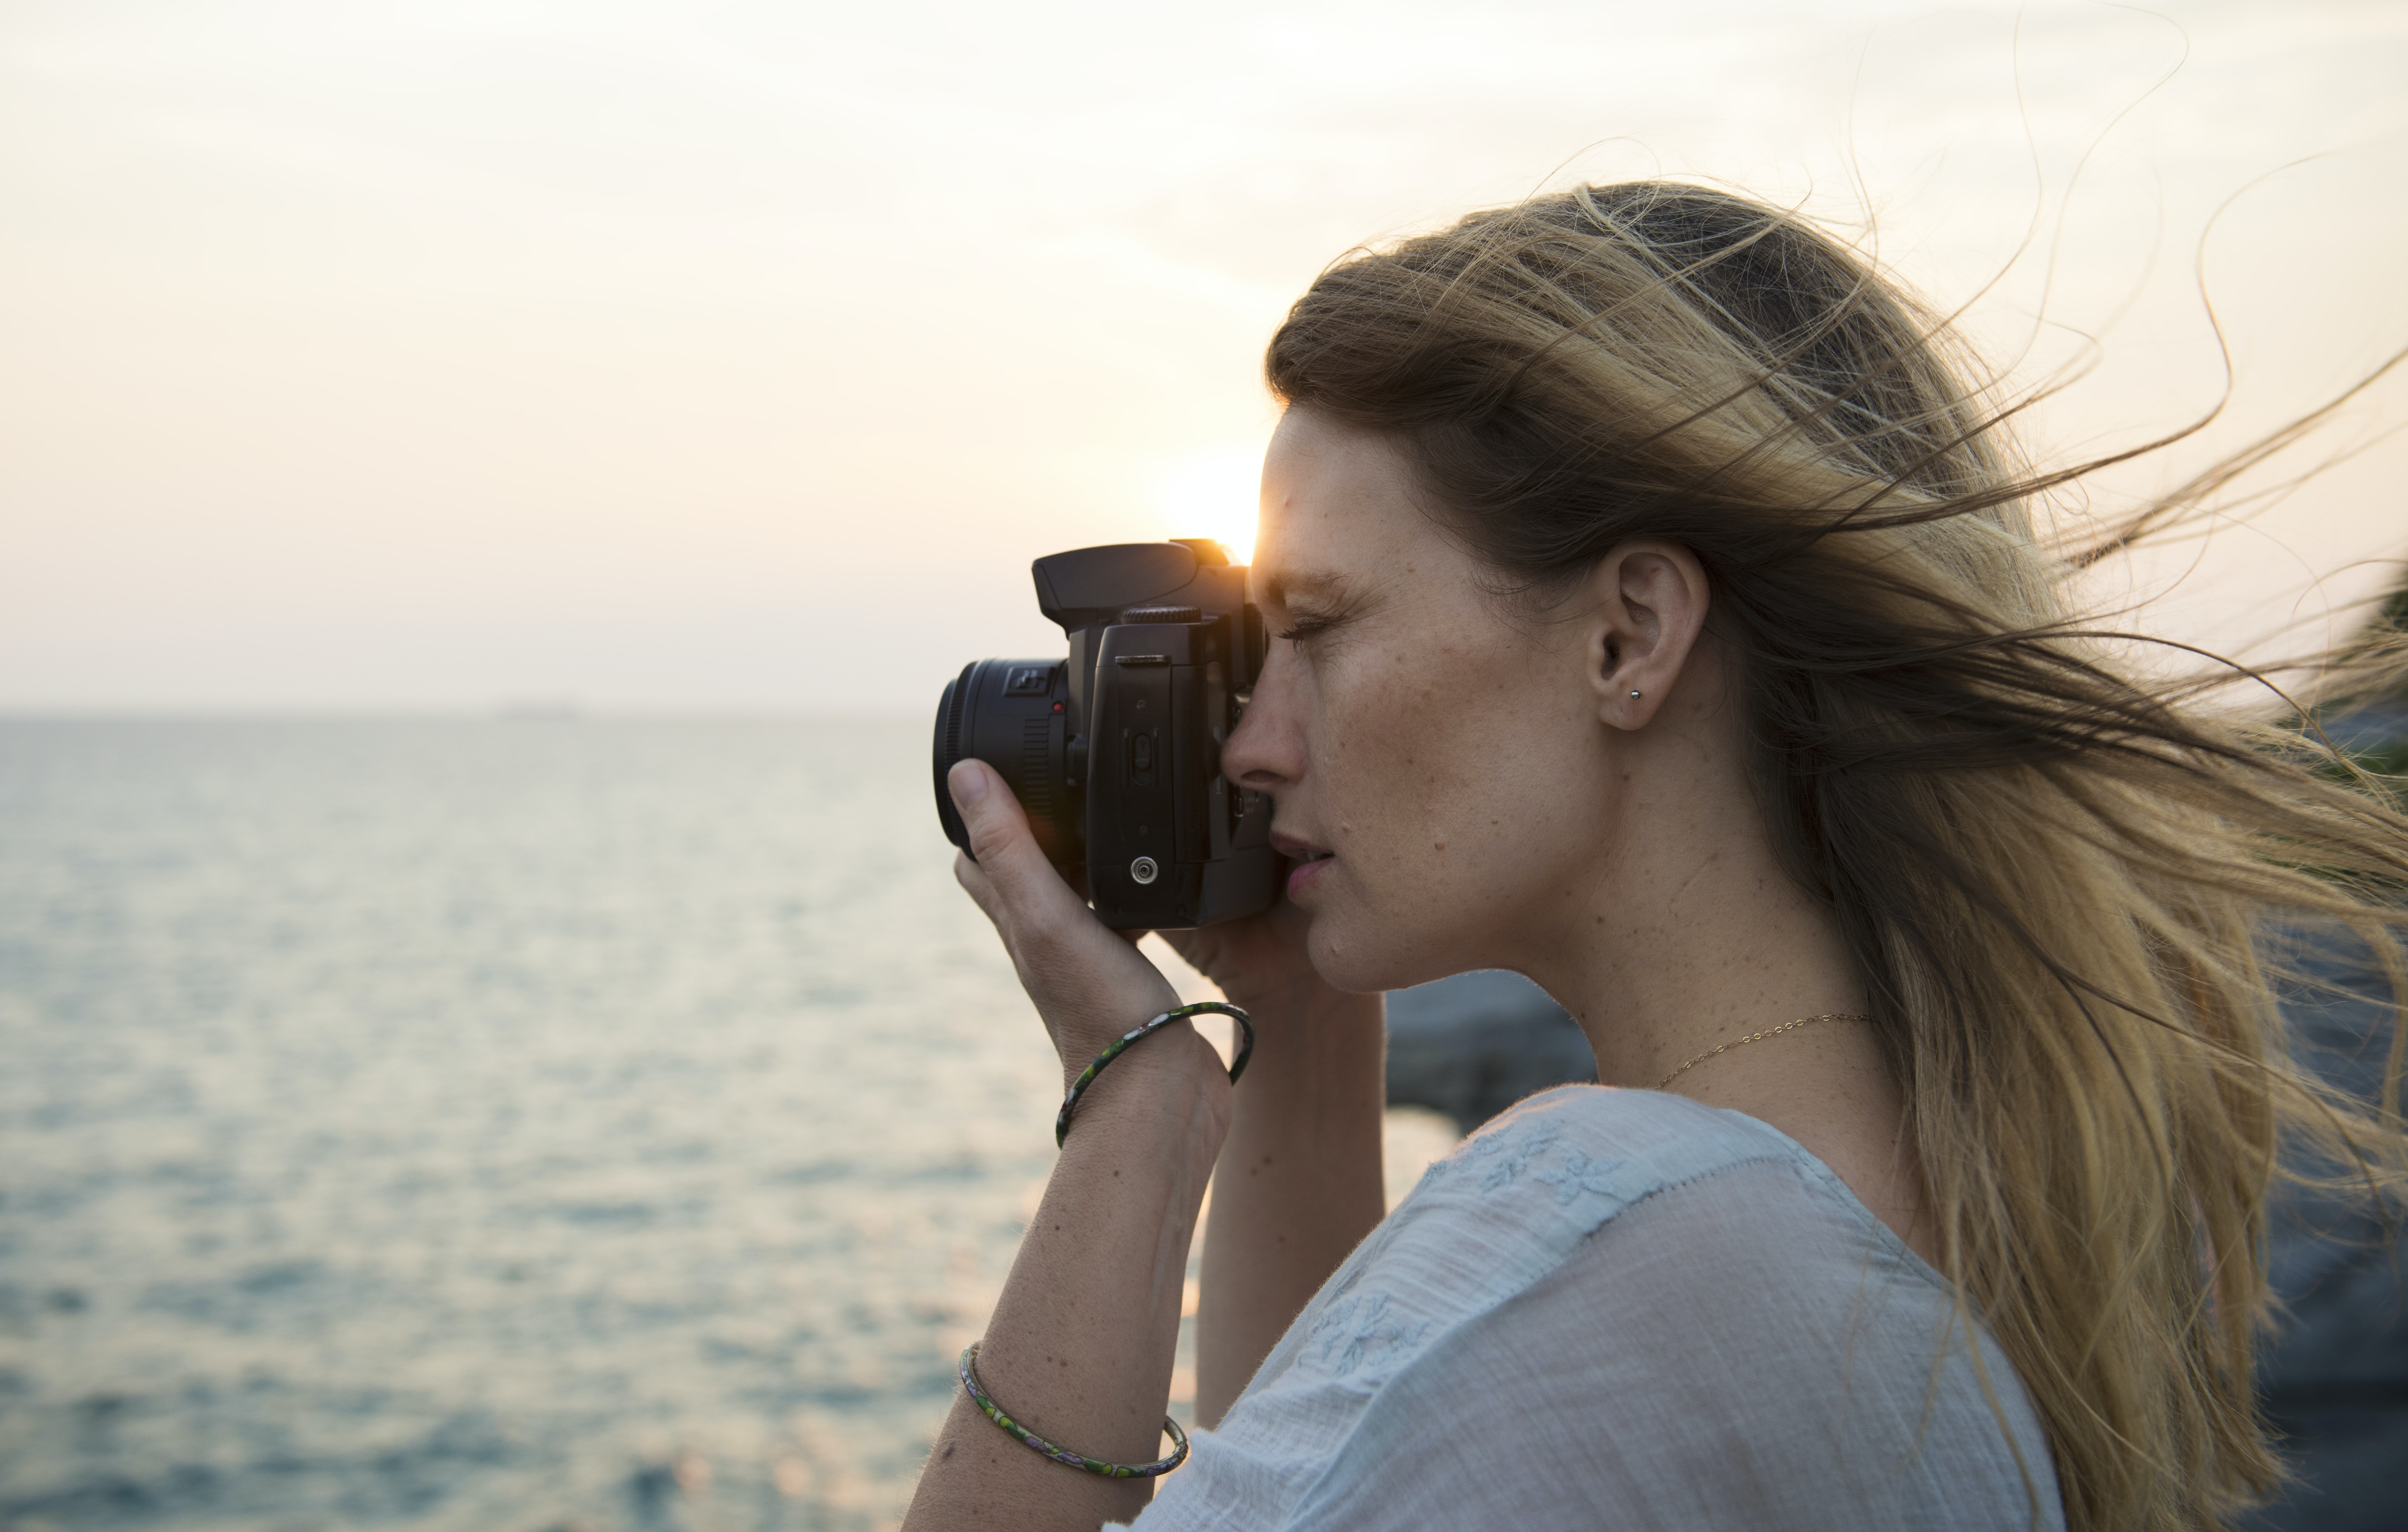 tilt-shift lens photography of woman holding SLR camera and taking photo while standing near body of water during daytime